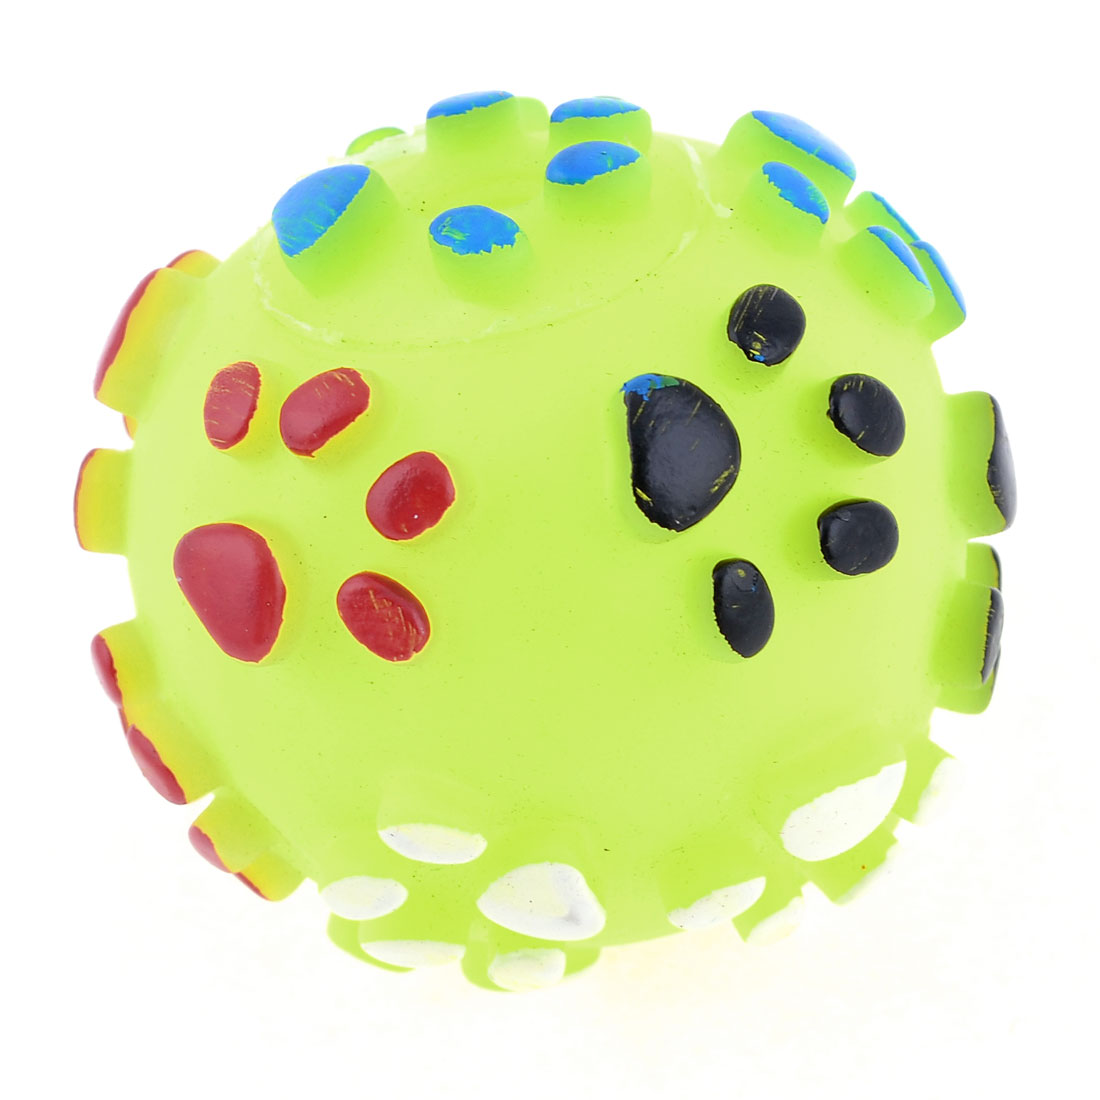 Textured Paw Design Yellow Rubber Round Ball Squeaky Toy for Pet Dog Poodle